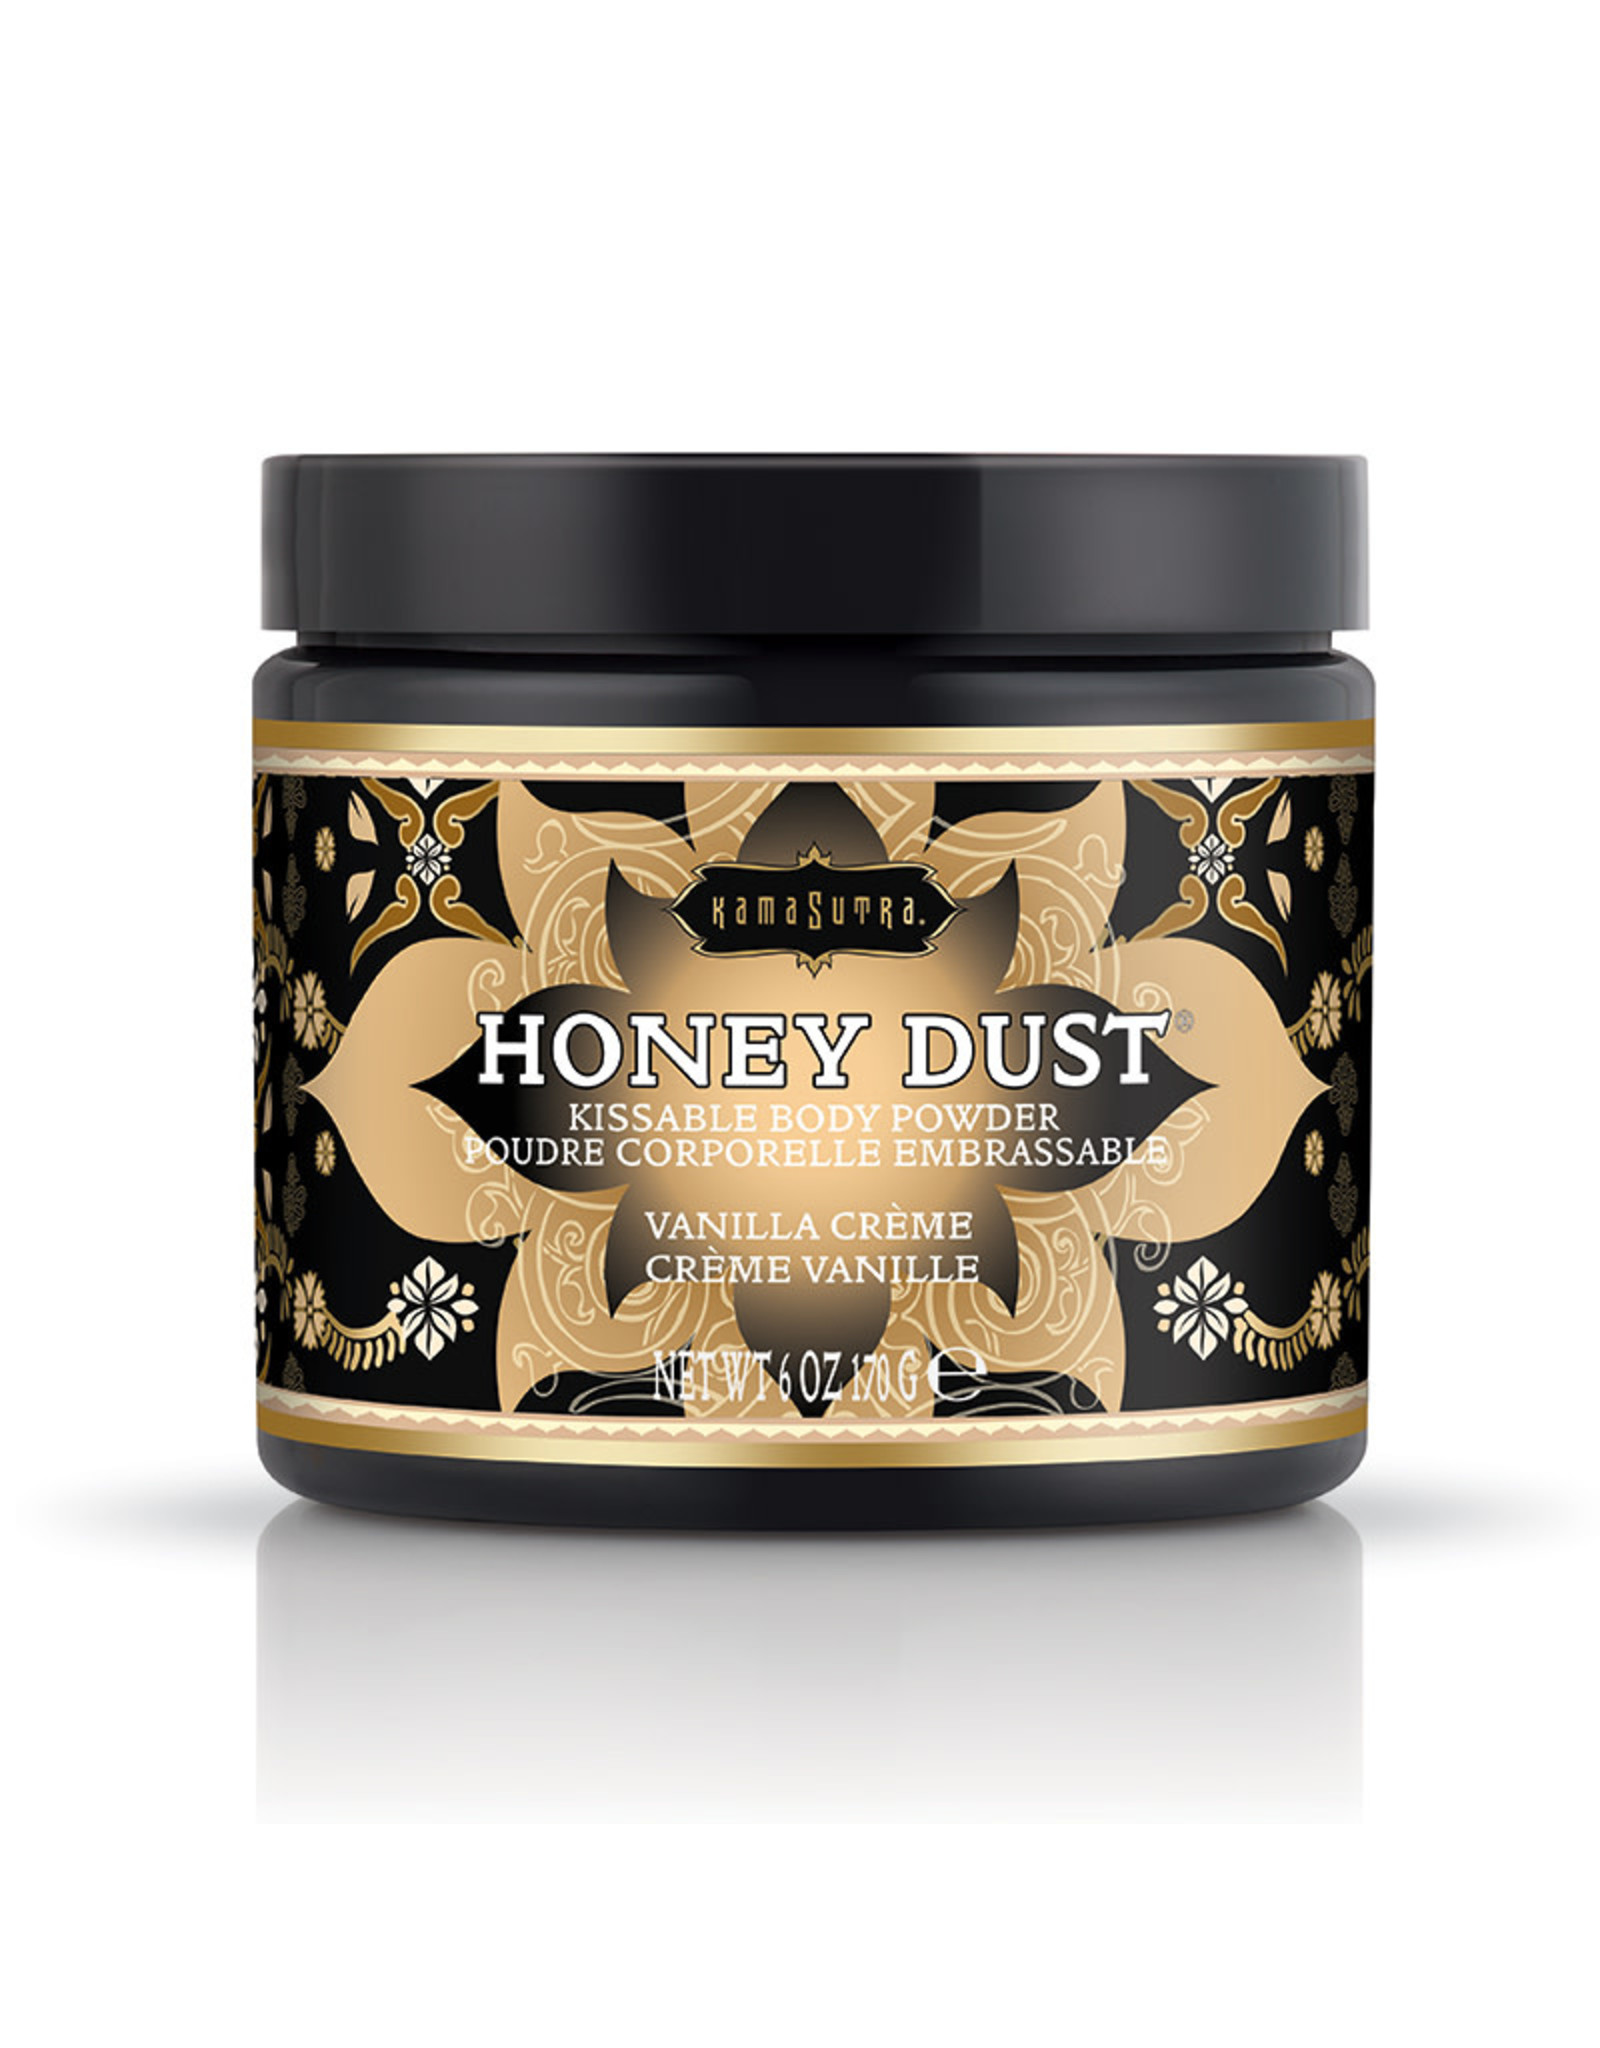 KamaSutra Honey Dust - Vanilla Creme